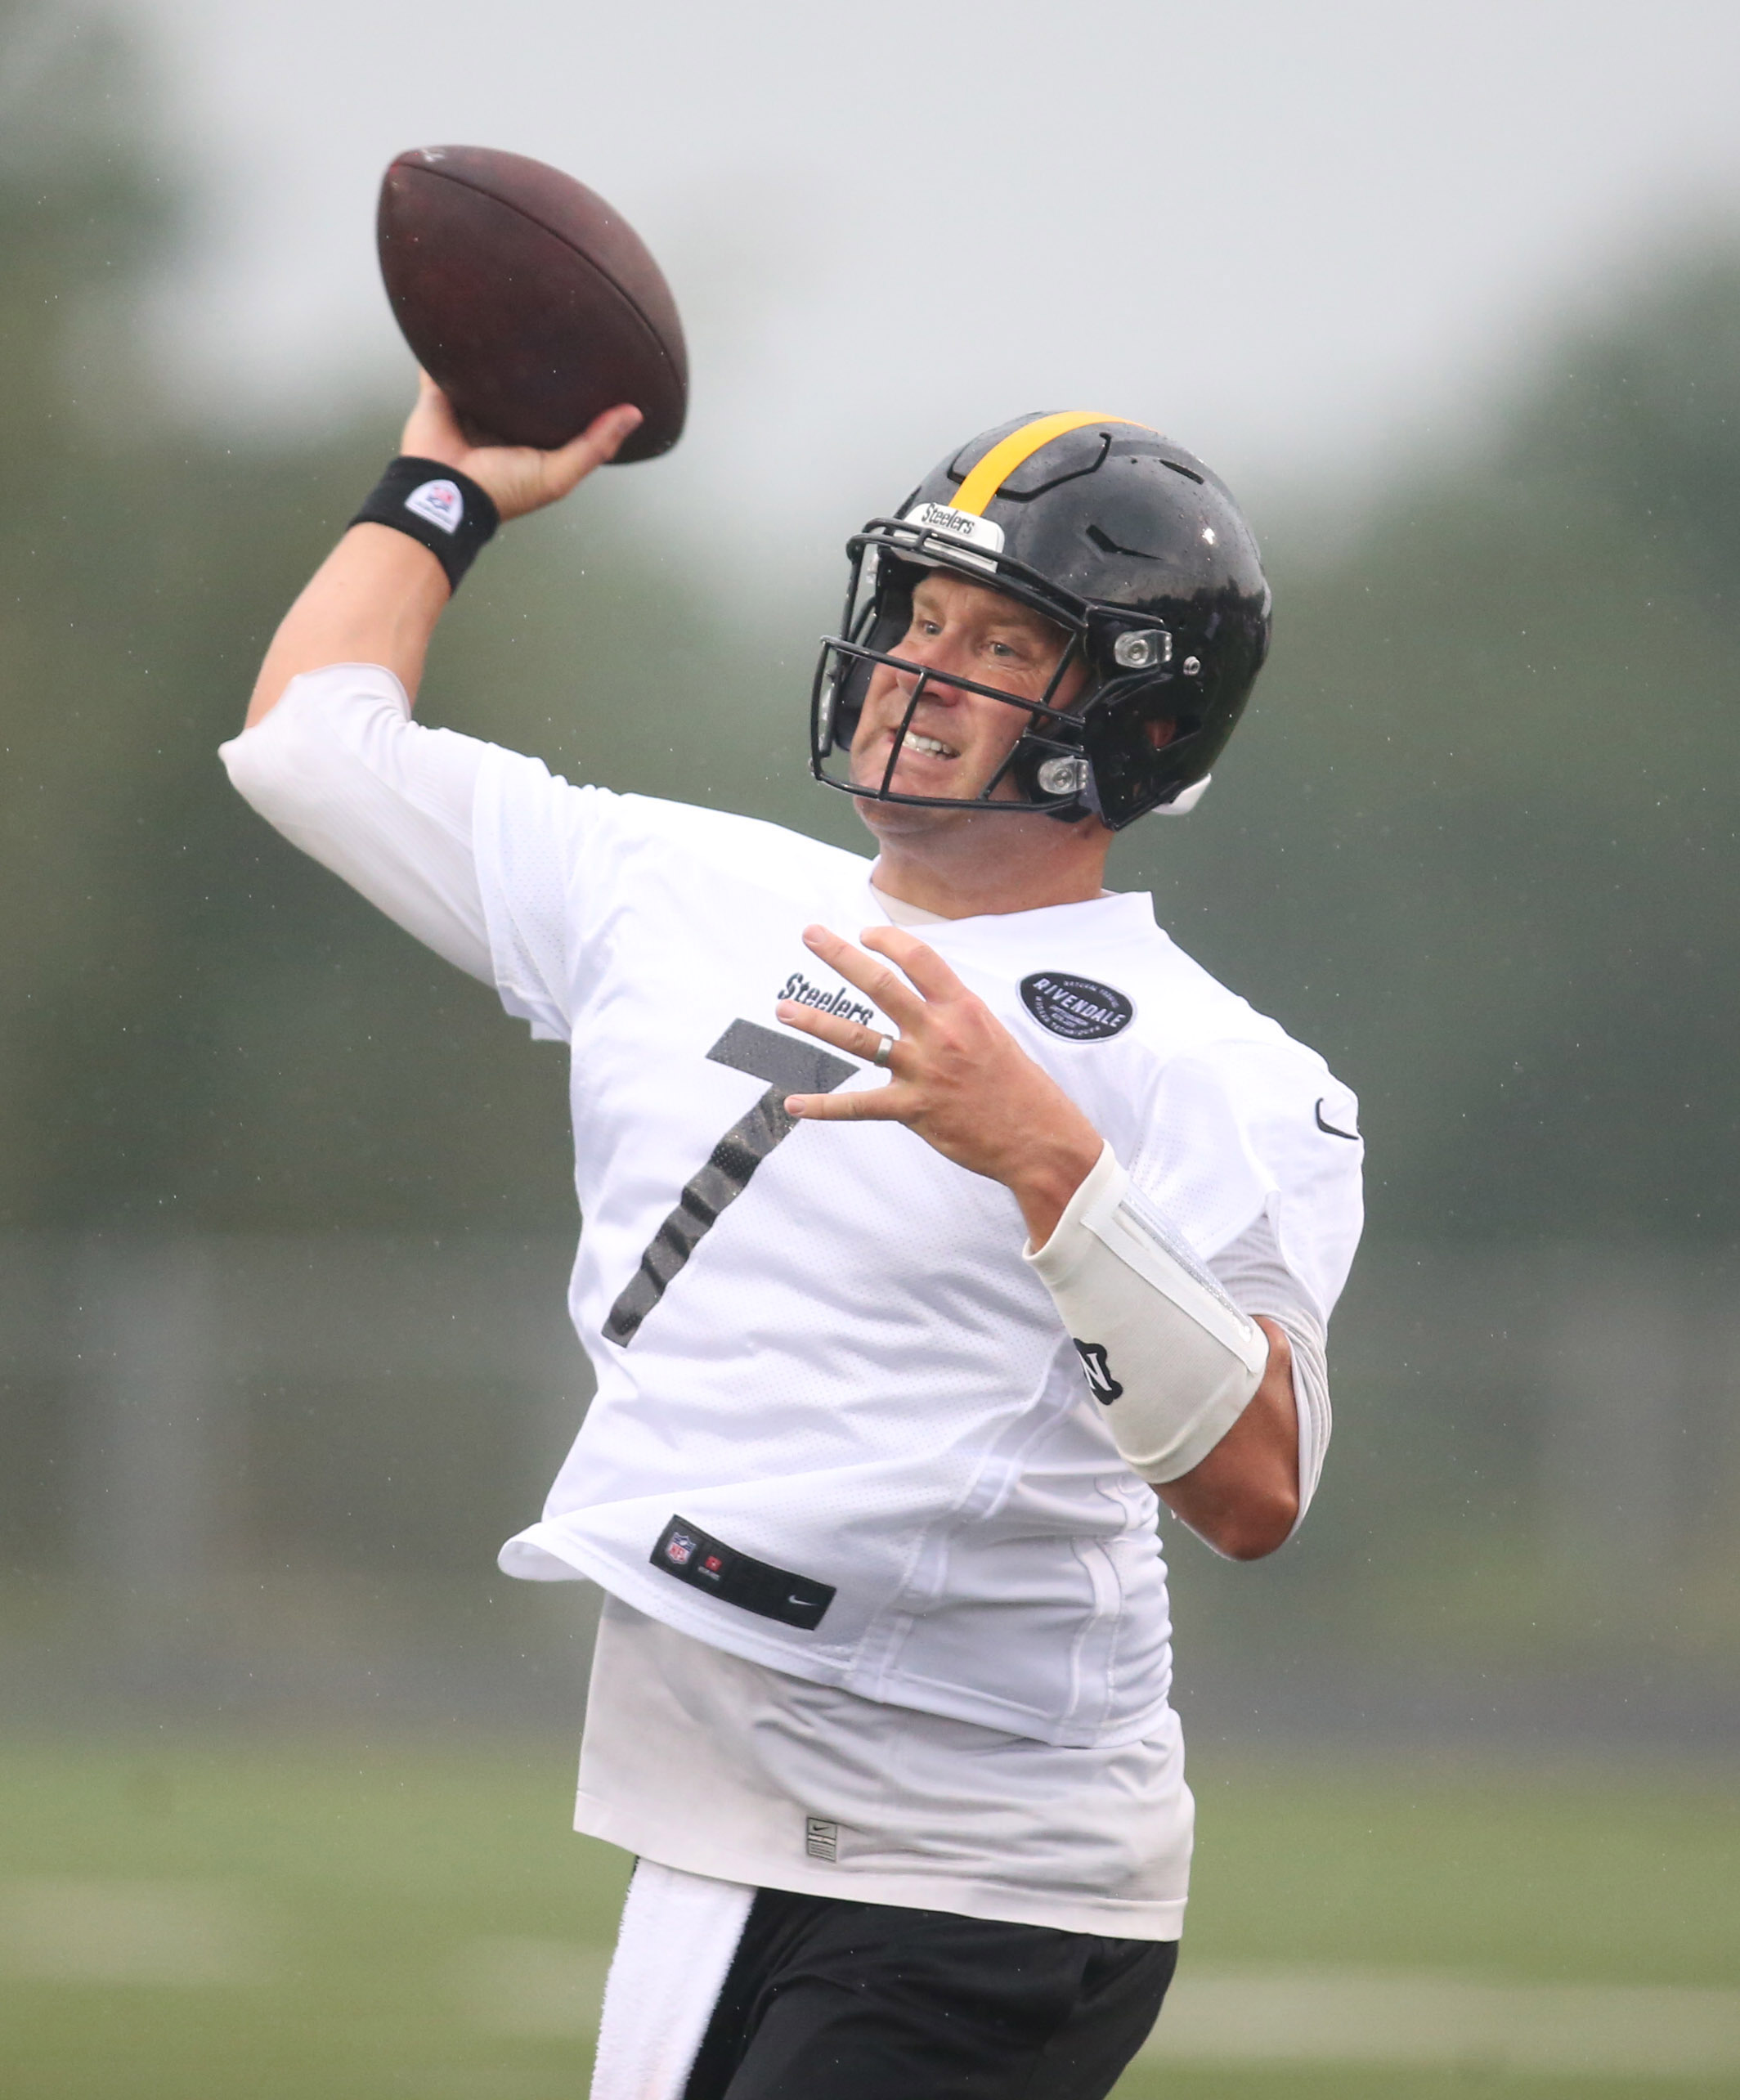 Impeccable Time Although Ben Roethlisberger Wound Up Concussion Protocol His Steelers Quarterback Avoided Major Ben Roethlisberger Pro Football Rumors curbed Ben Roethlisberger House